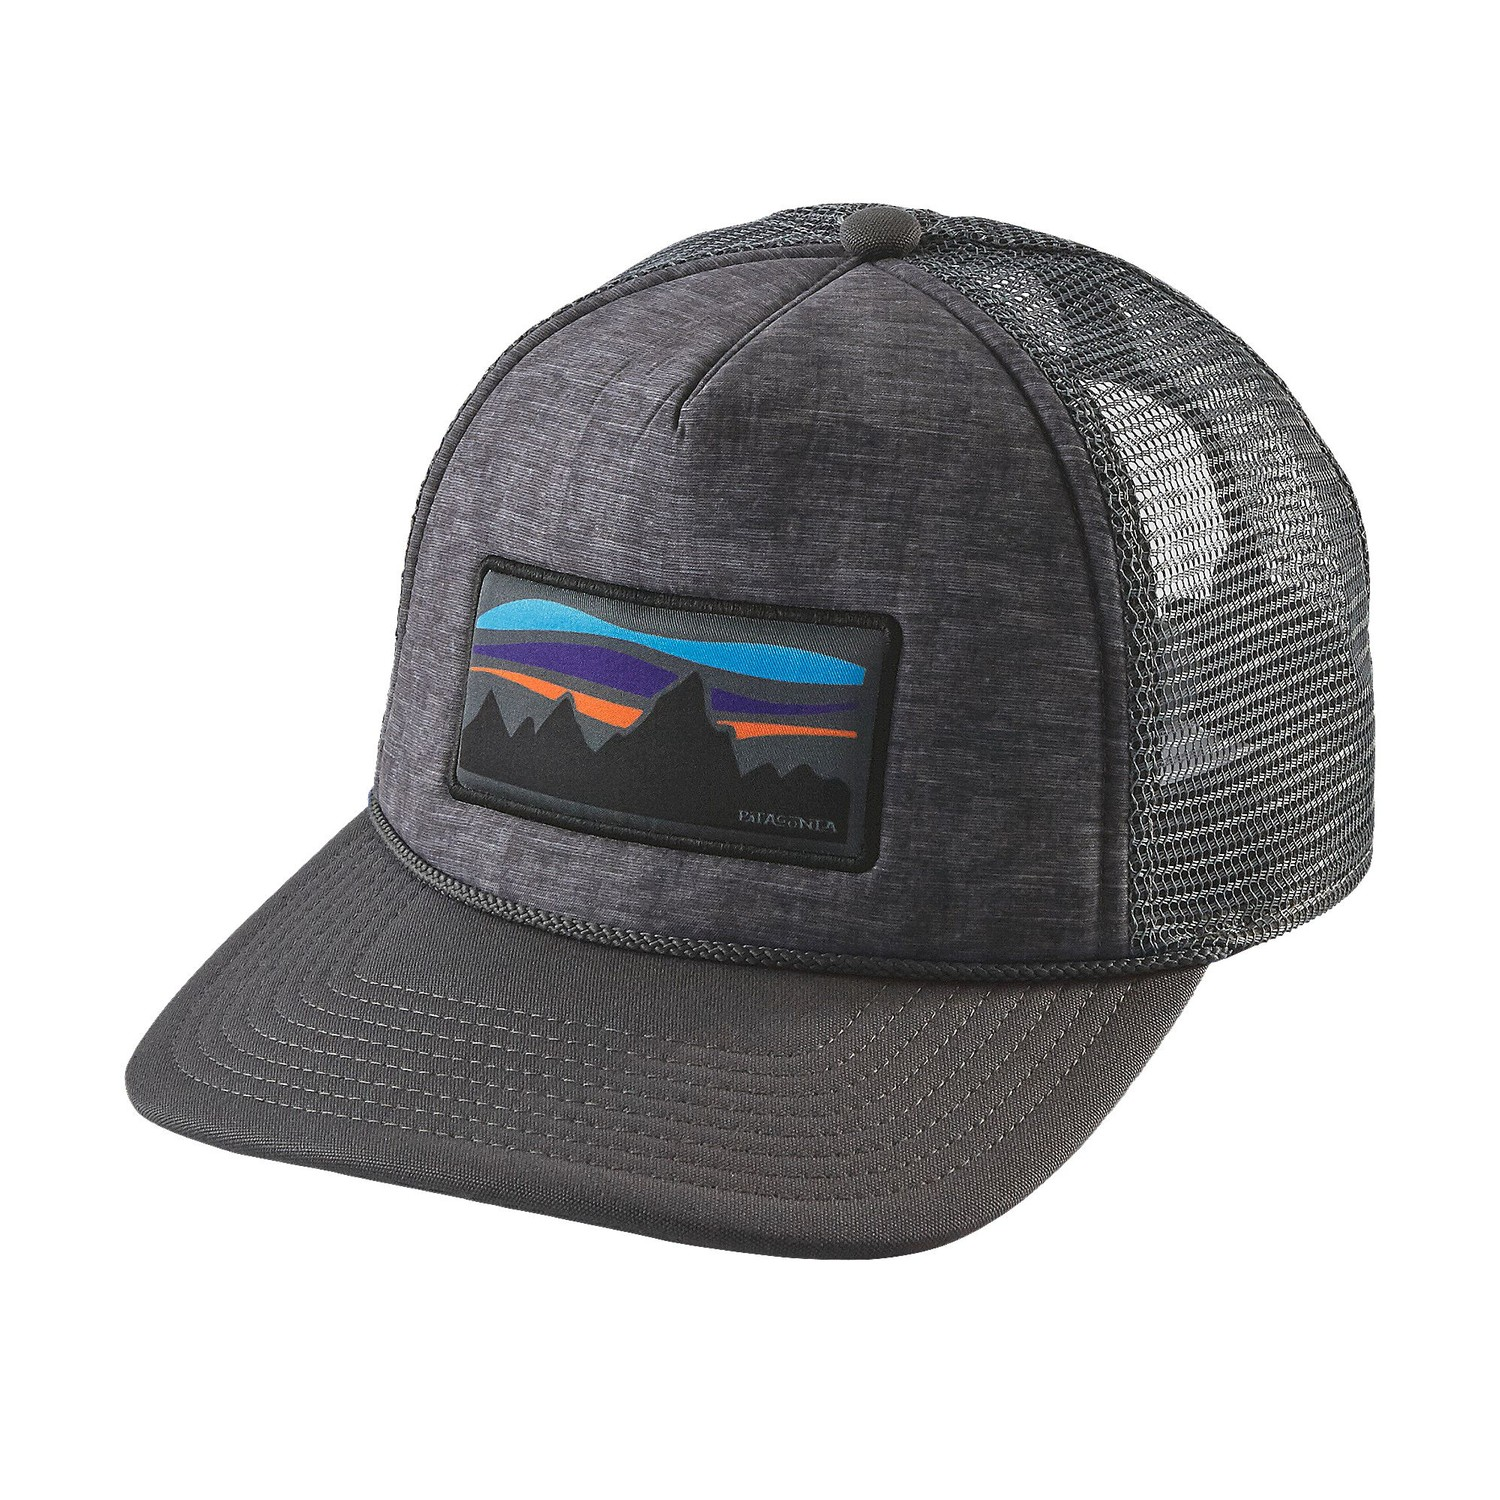 Patagonia Fitz Roy Banner Interstate Hat  a2d31ed708a